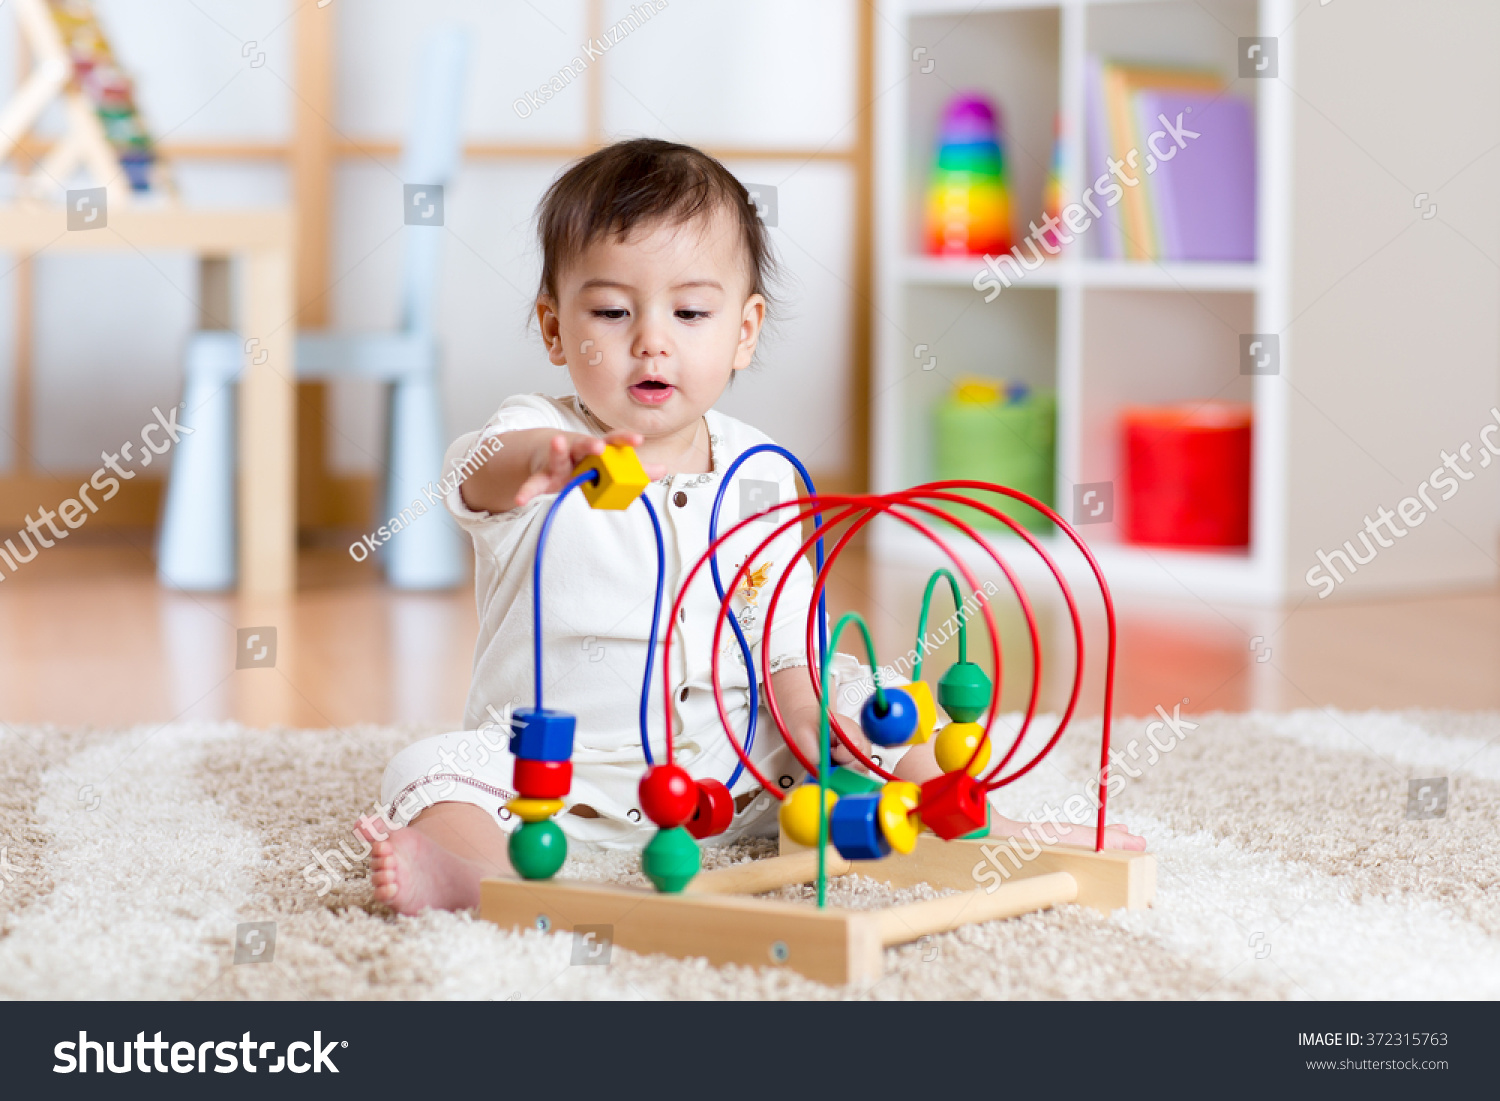 Educational Toys Nursery : Baby girl playing educational toy nursery stock photo